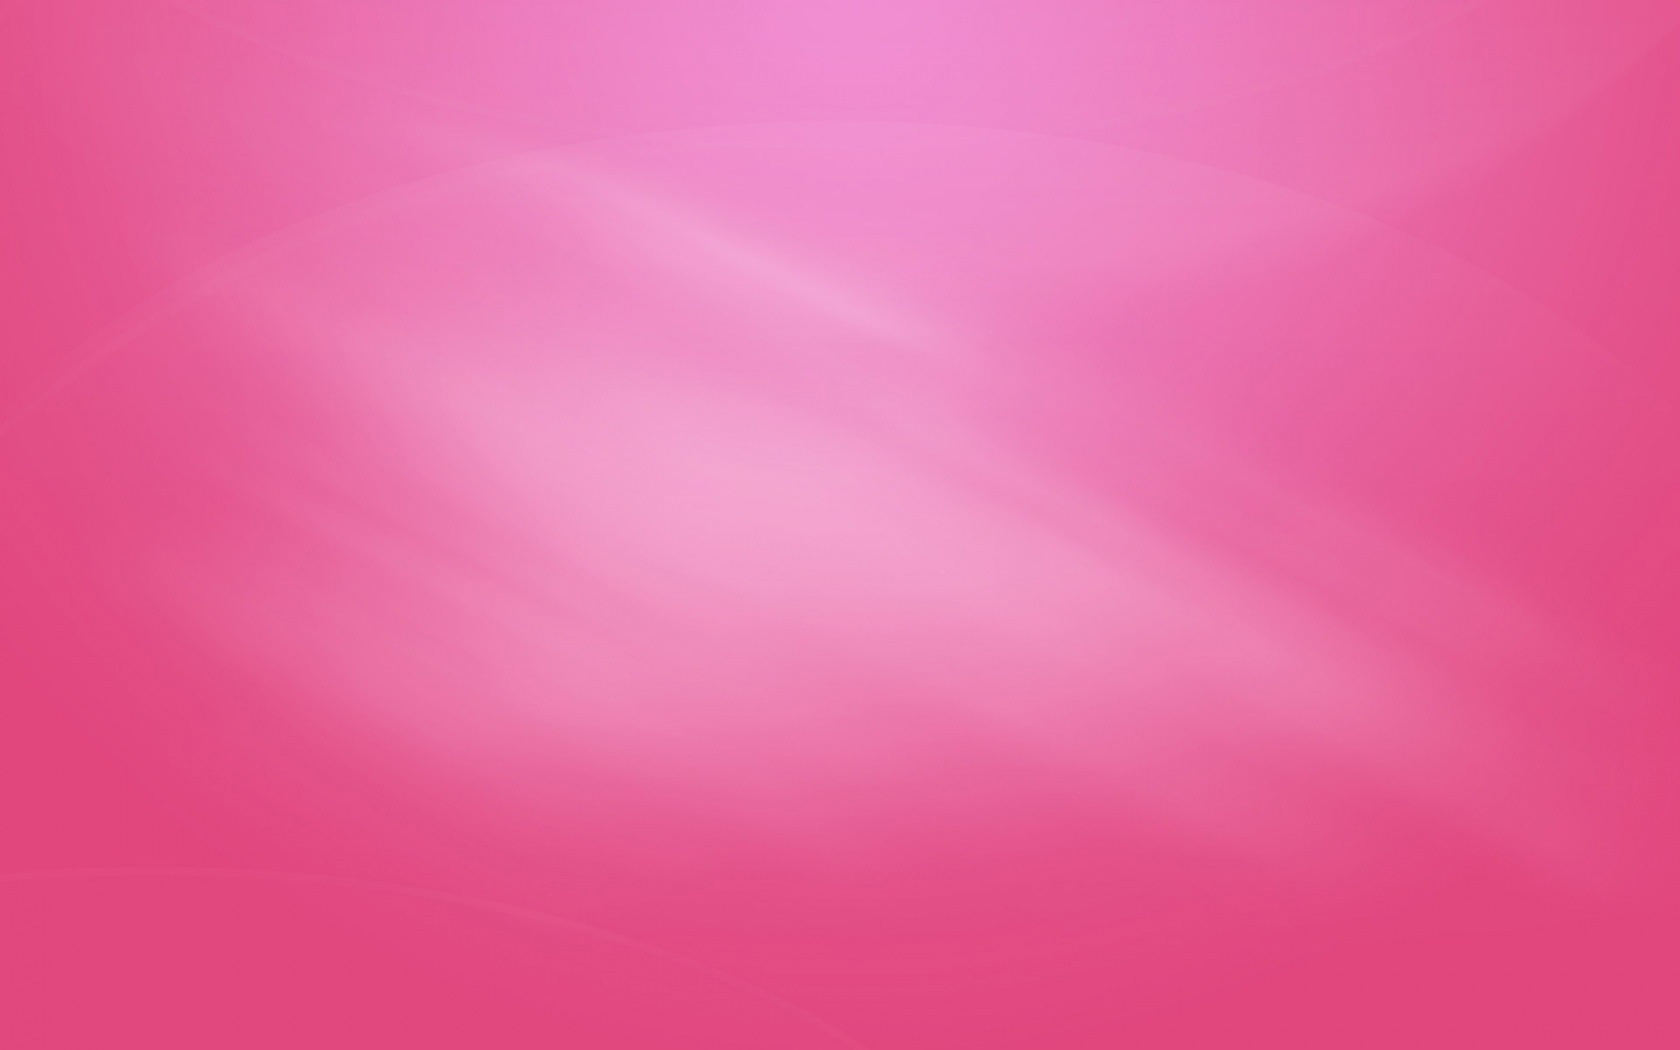 Pink Background Wallpaper & pix